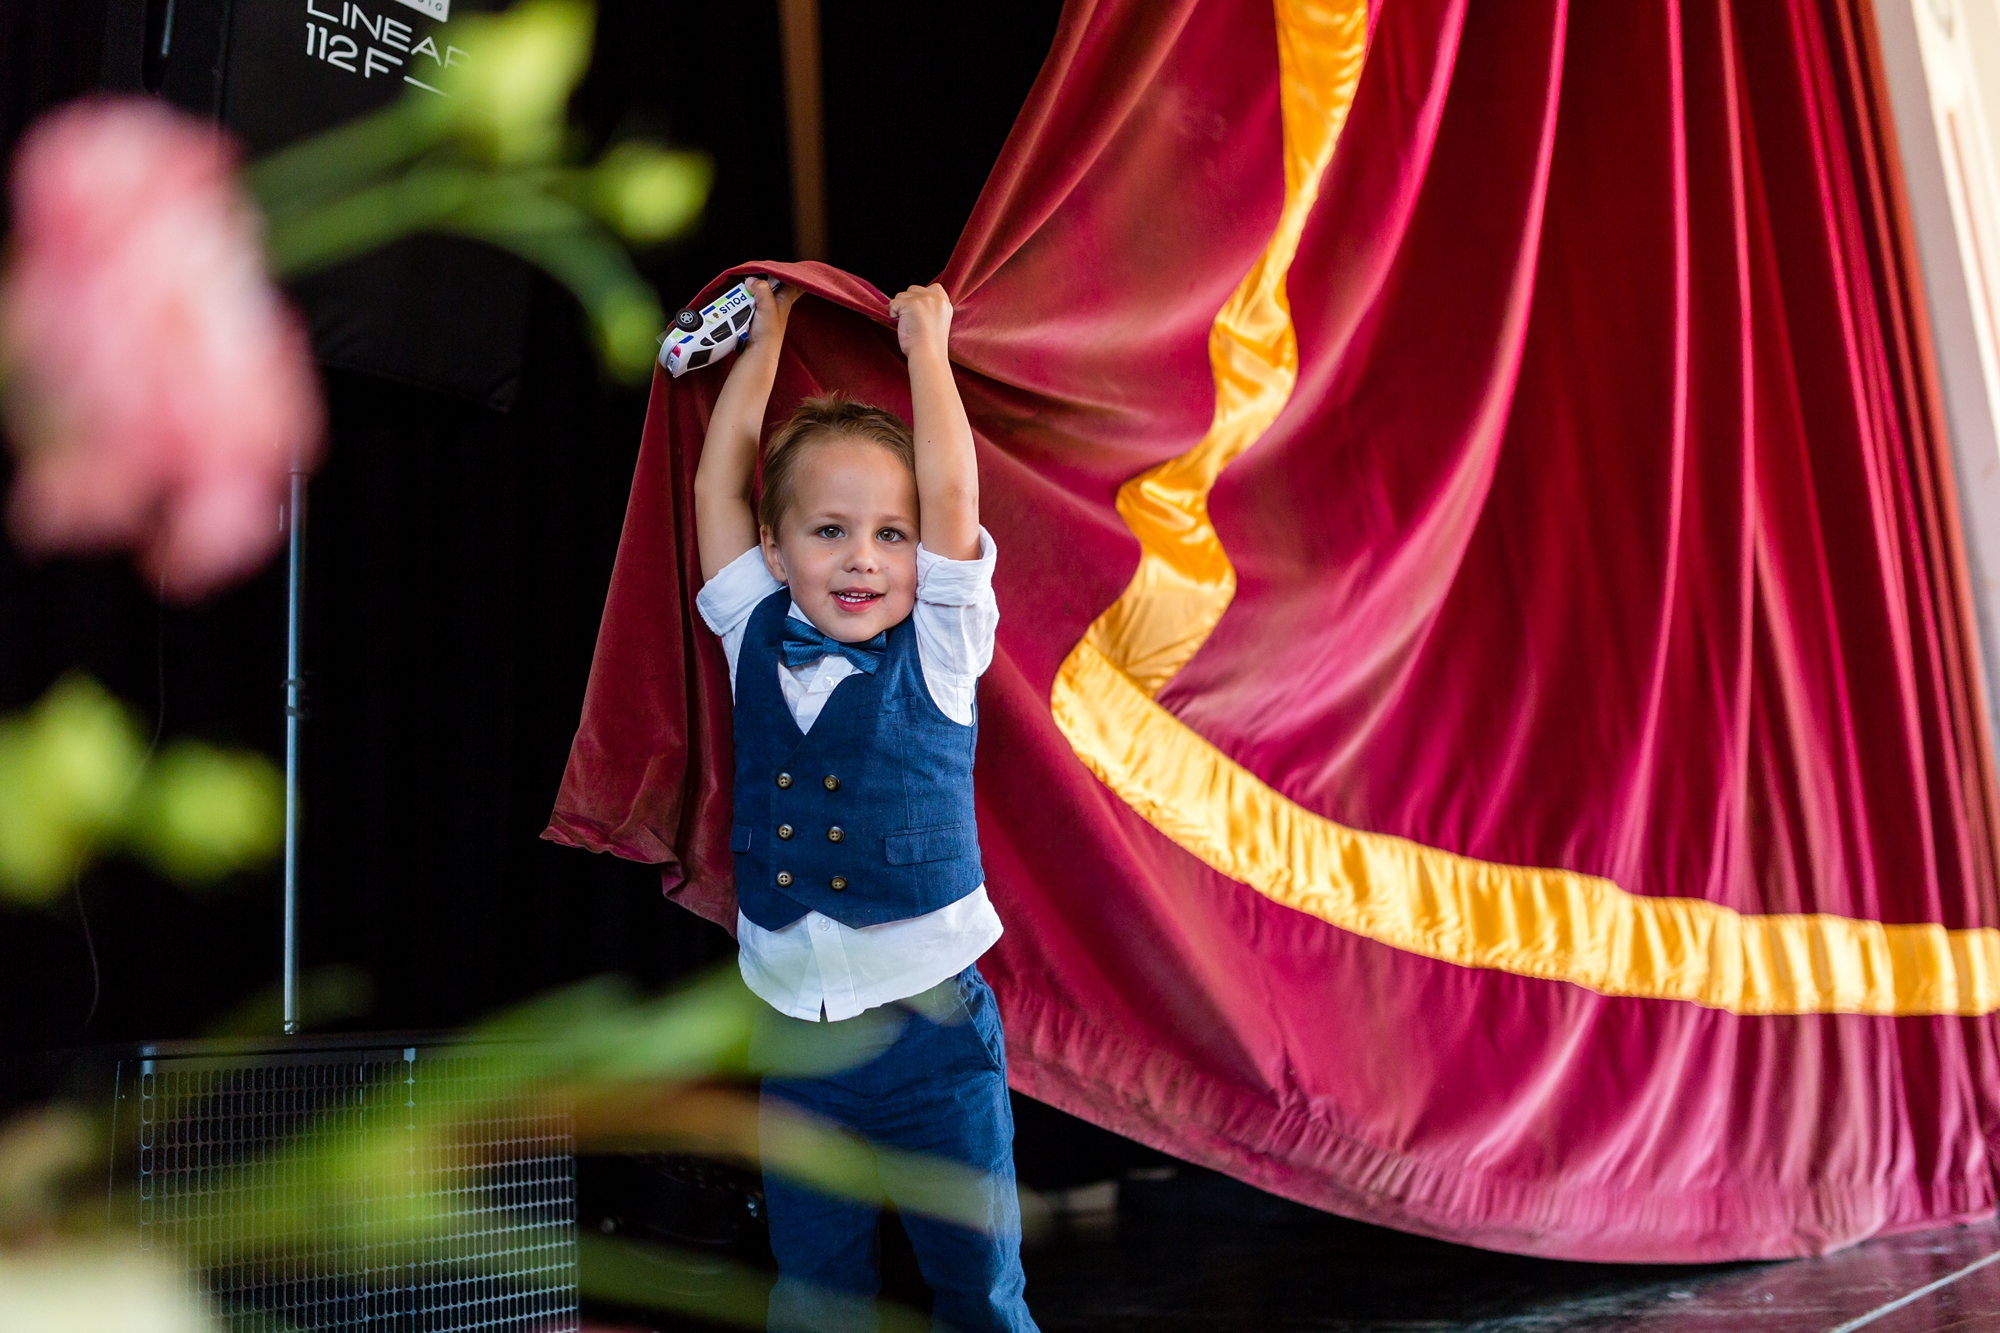 Cheeky kid lights the curtain during speeches A fun Yorkshire Wedding